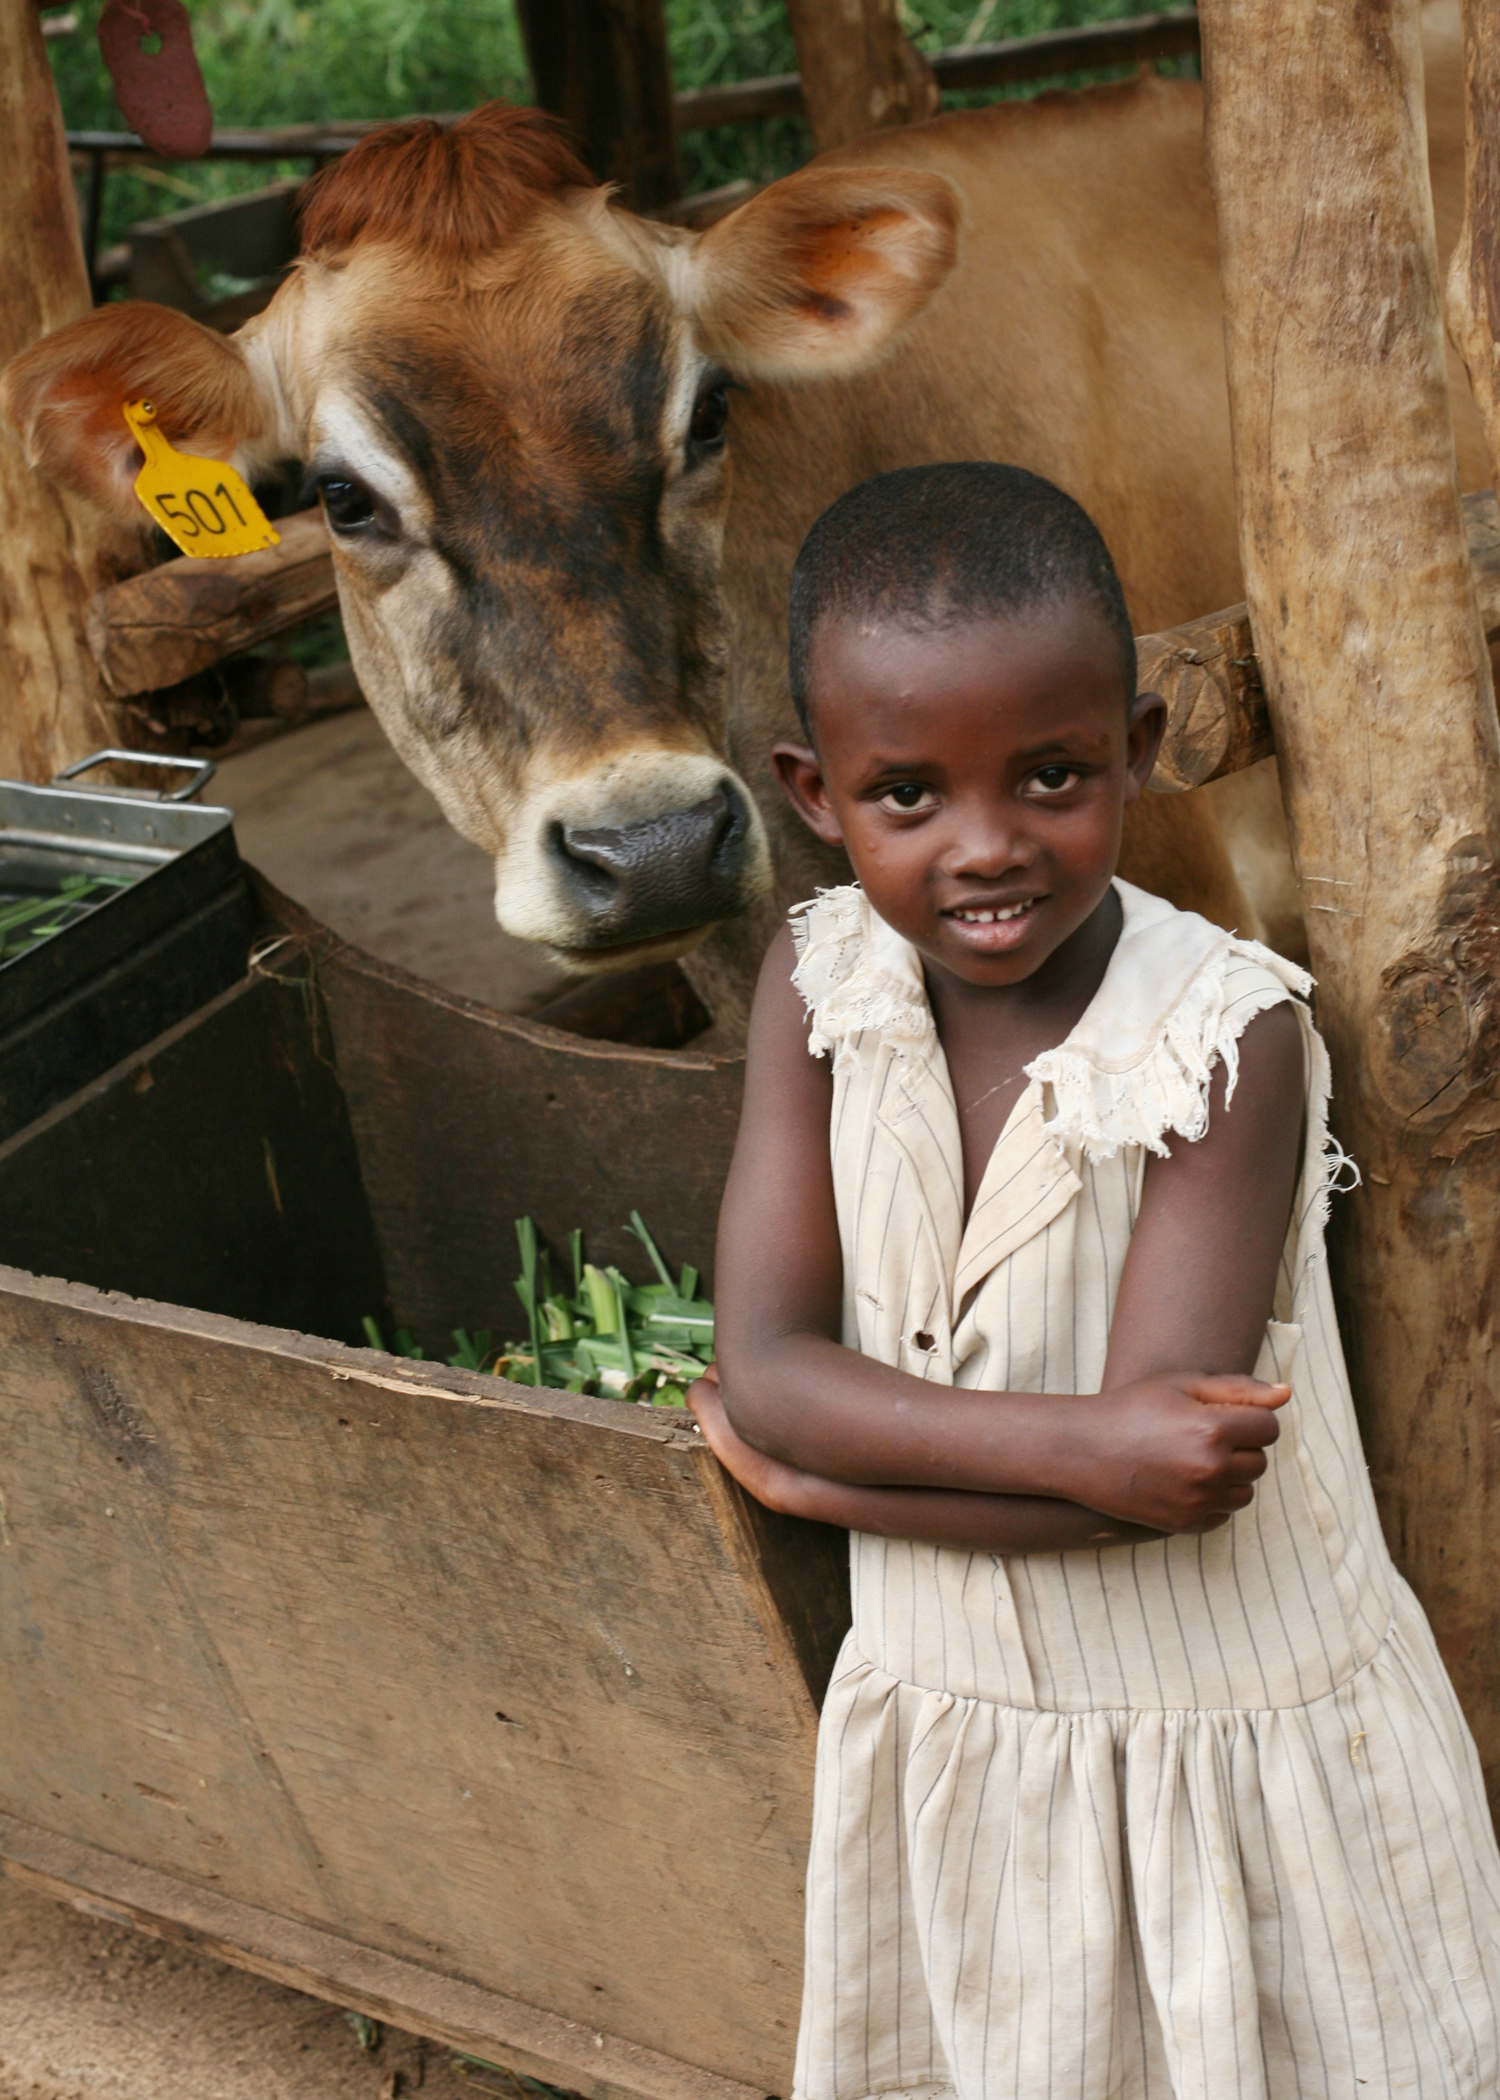 10% of profits to heifer inter-national - Tap for info!